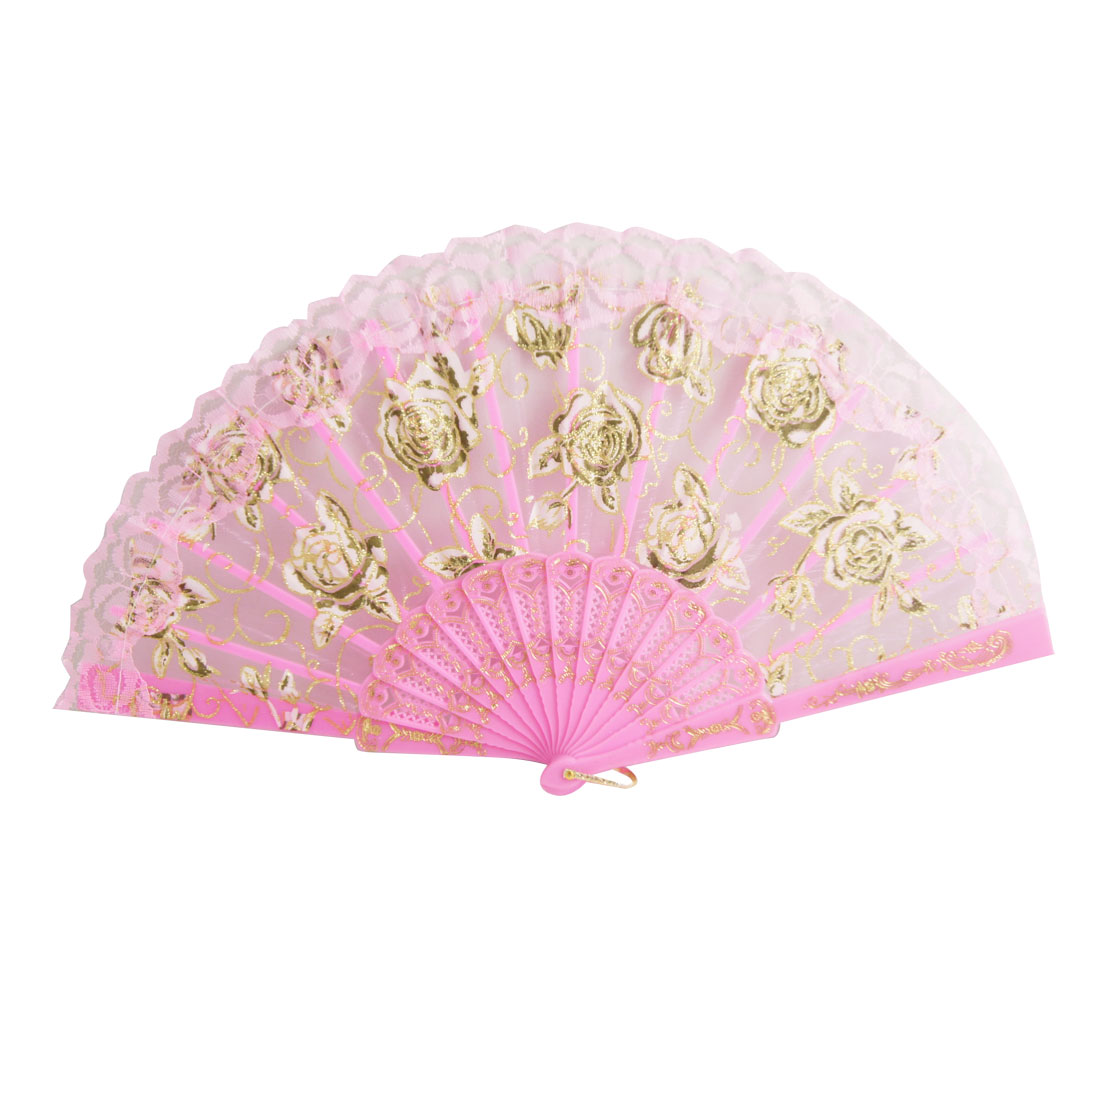 Flower Painted Plastic Organza Hand Folding Fan Pink for Lady